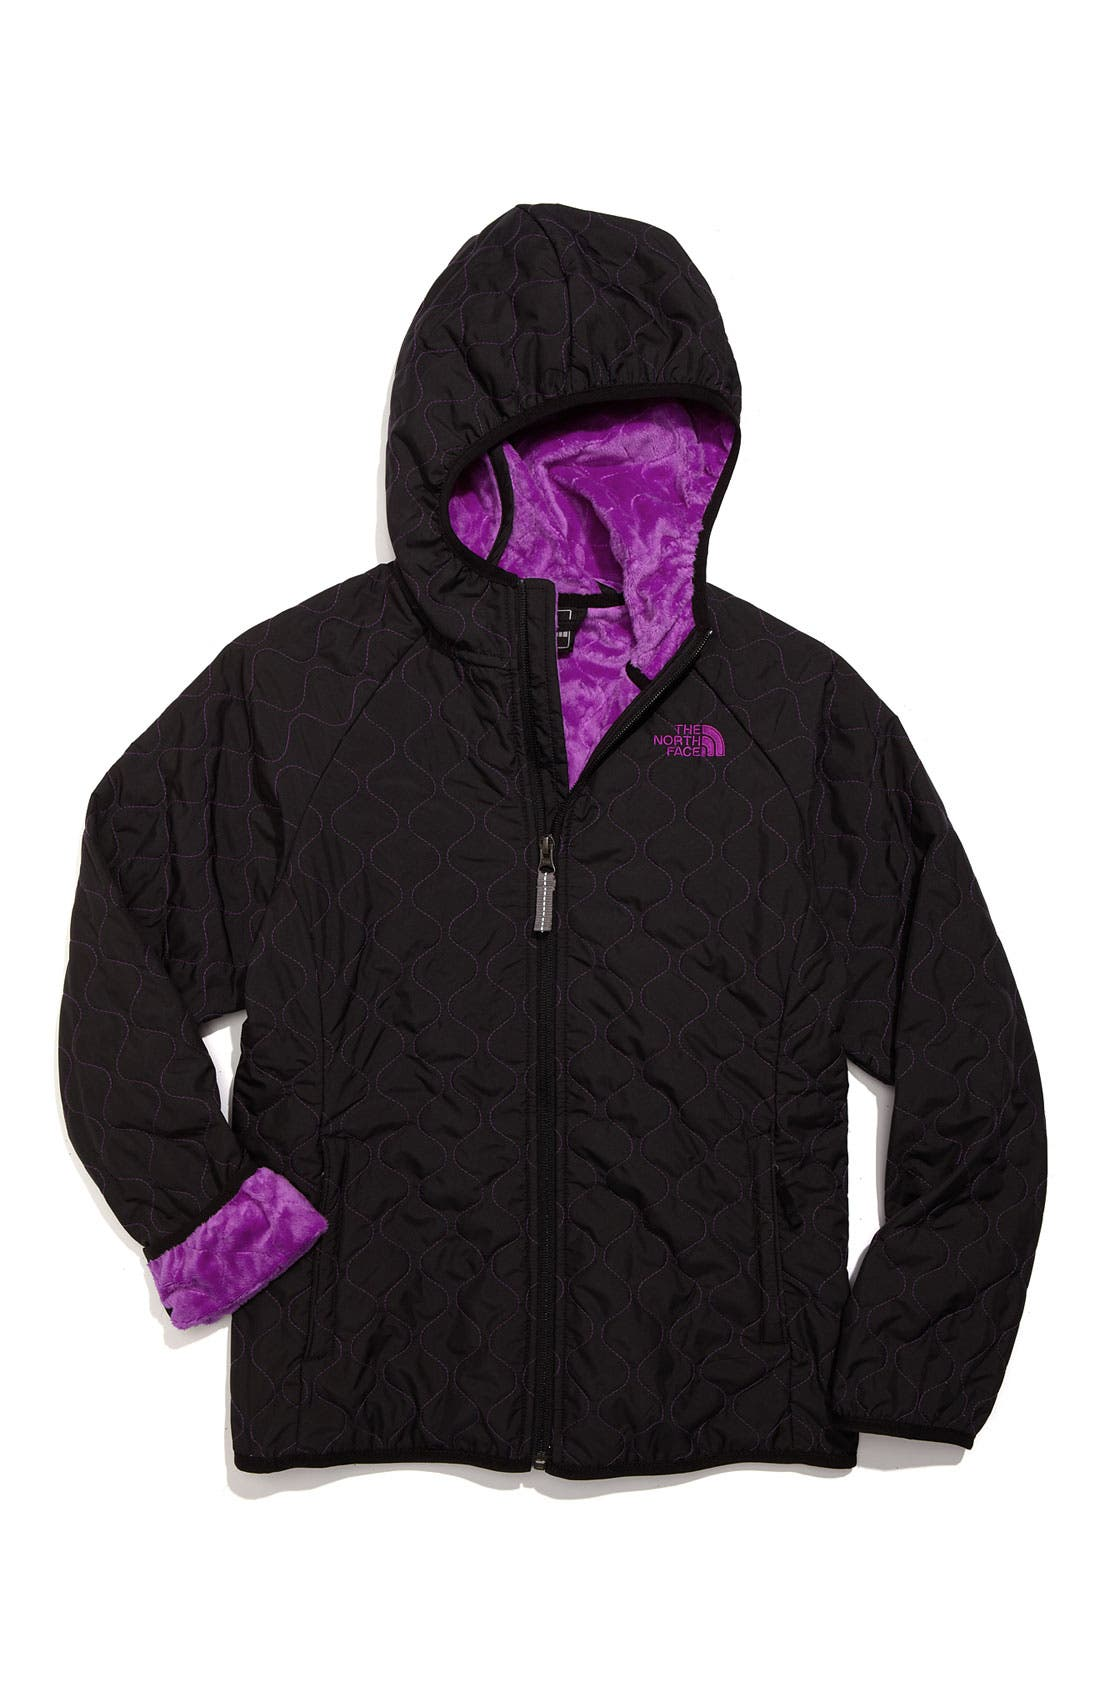 Alternate Image 1 Selected - The North Face 'Lil Breeze' Wind Jacket (Little Girls)